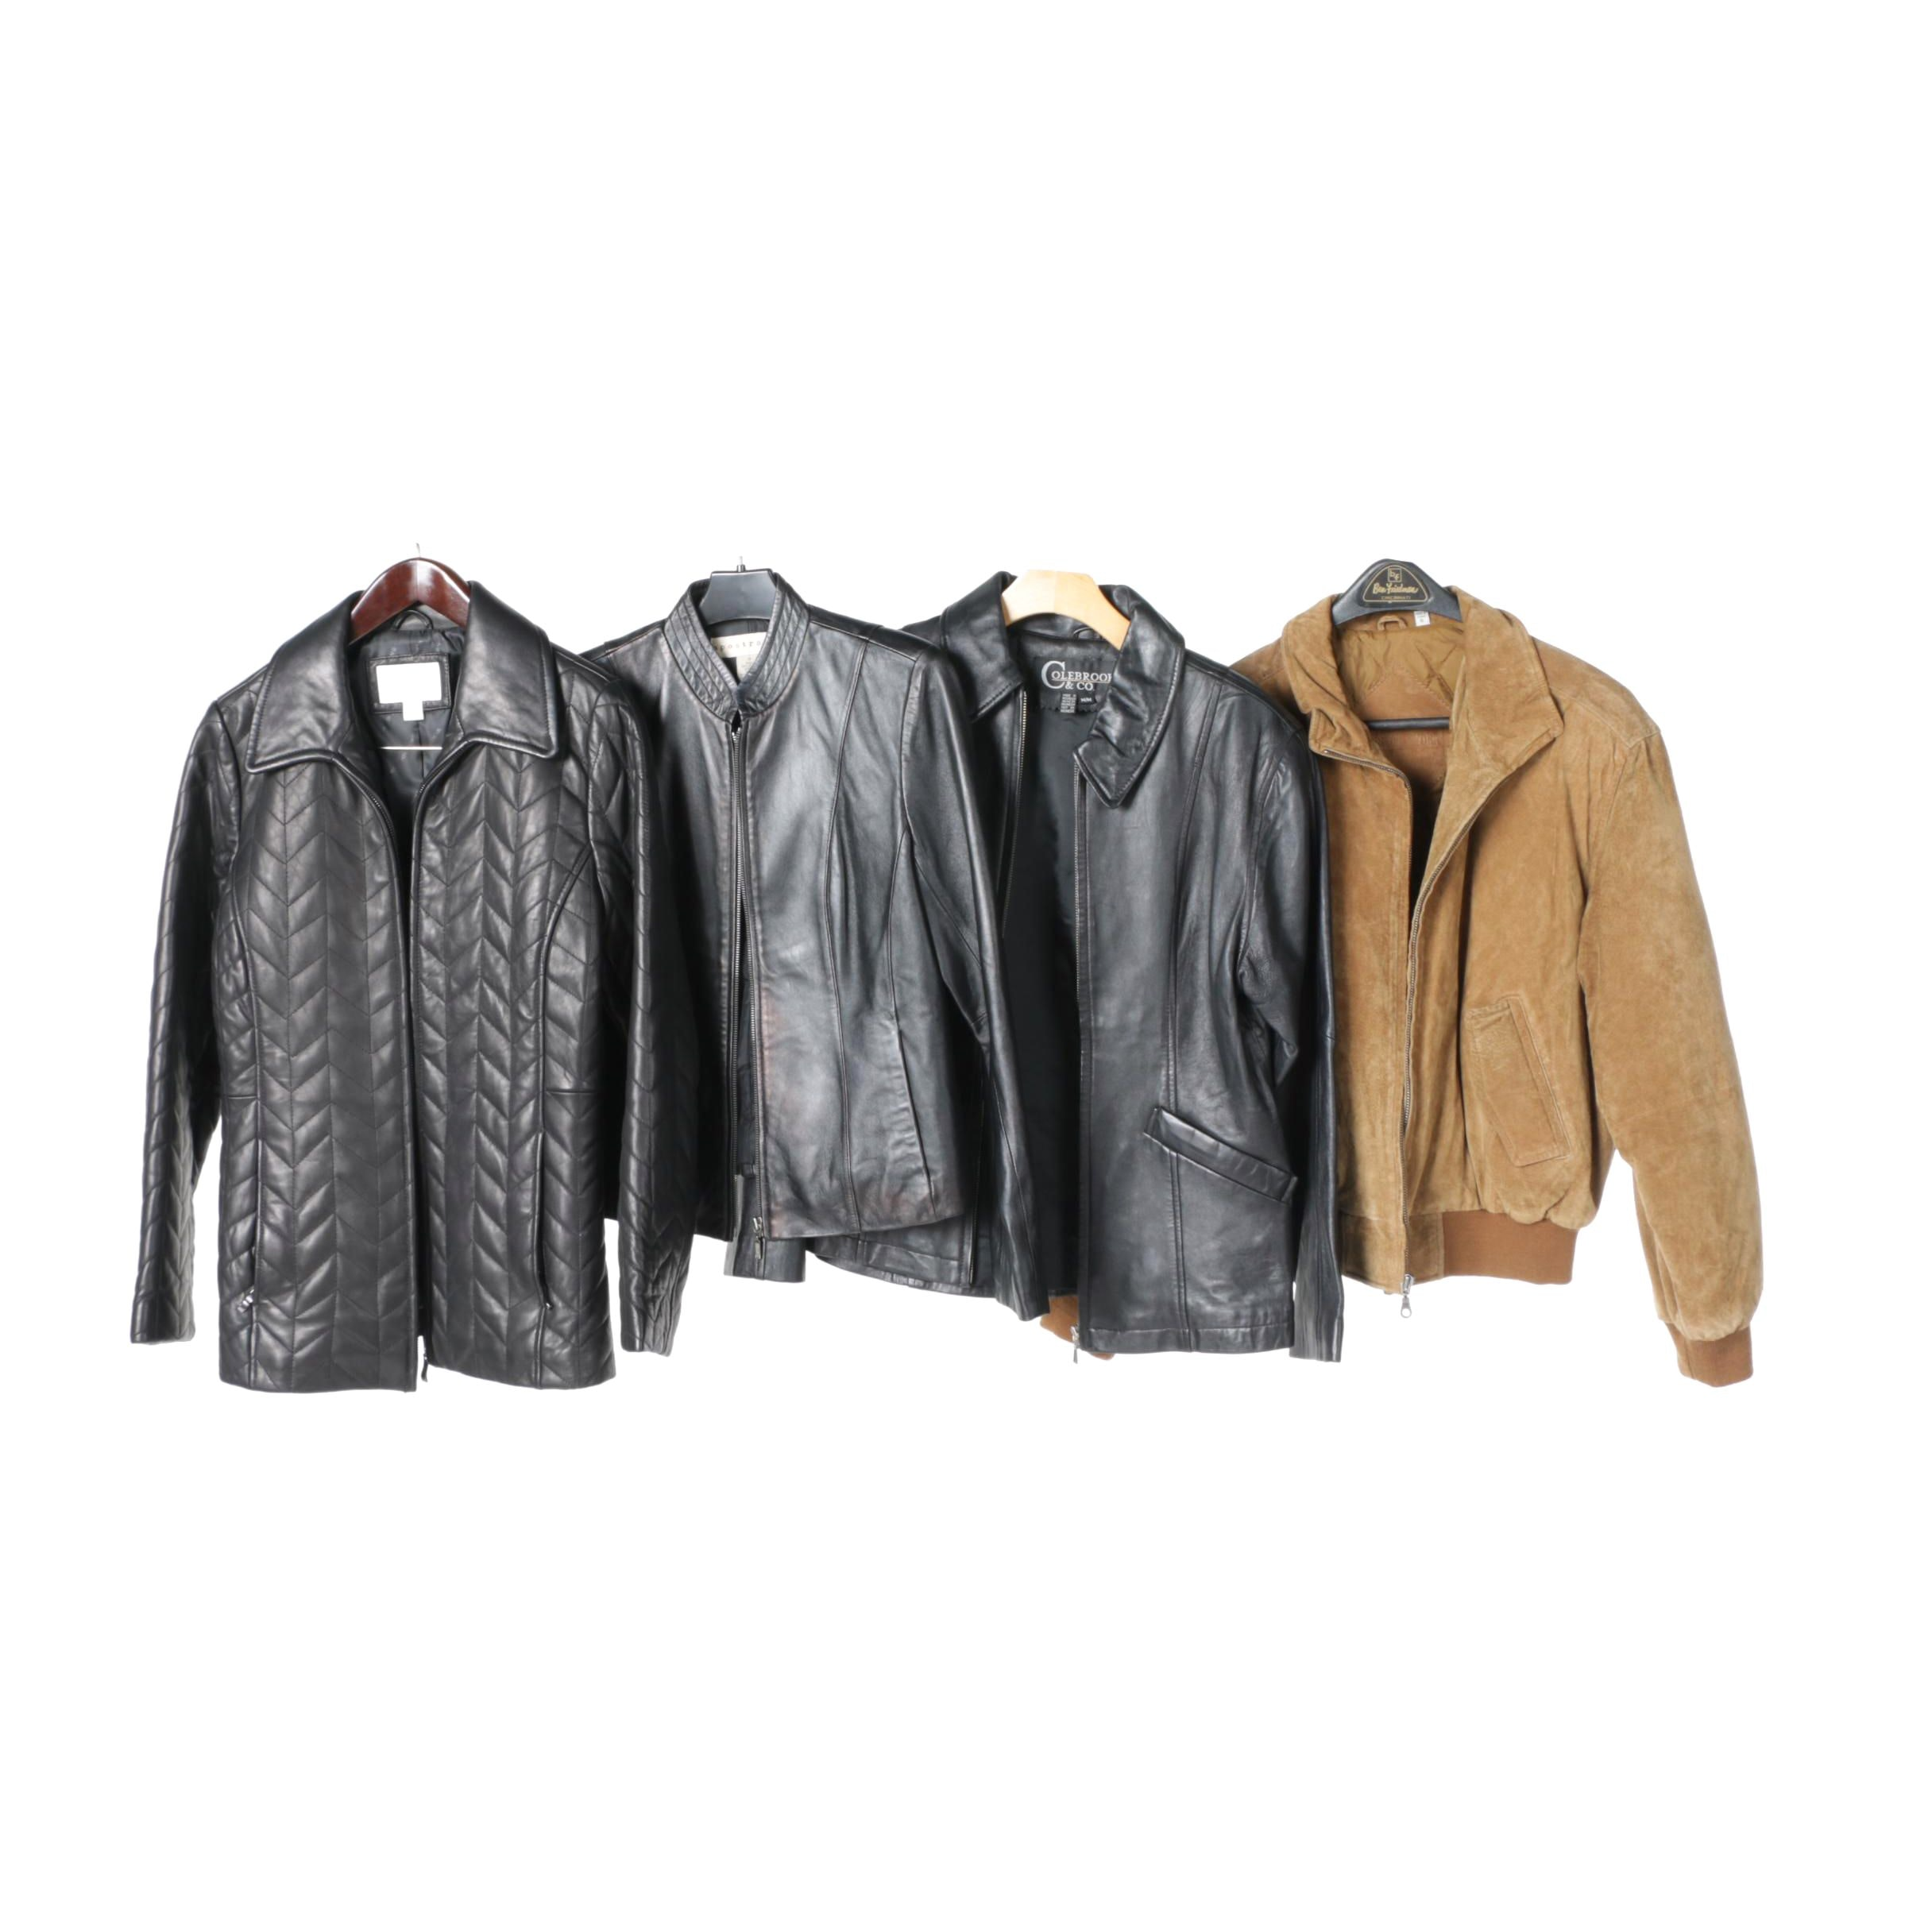 Women's Leather and Suede Jackets